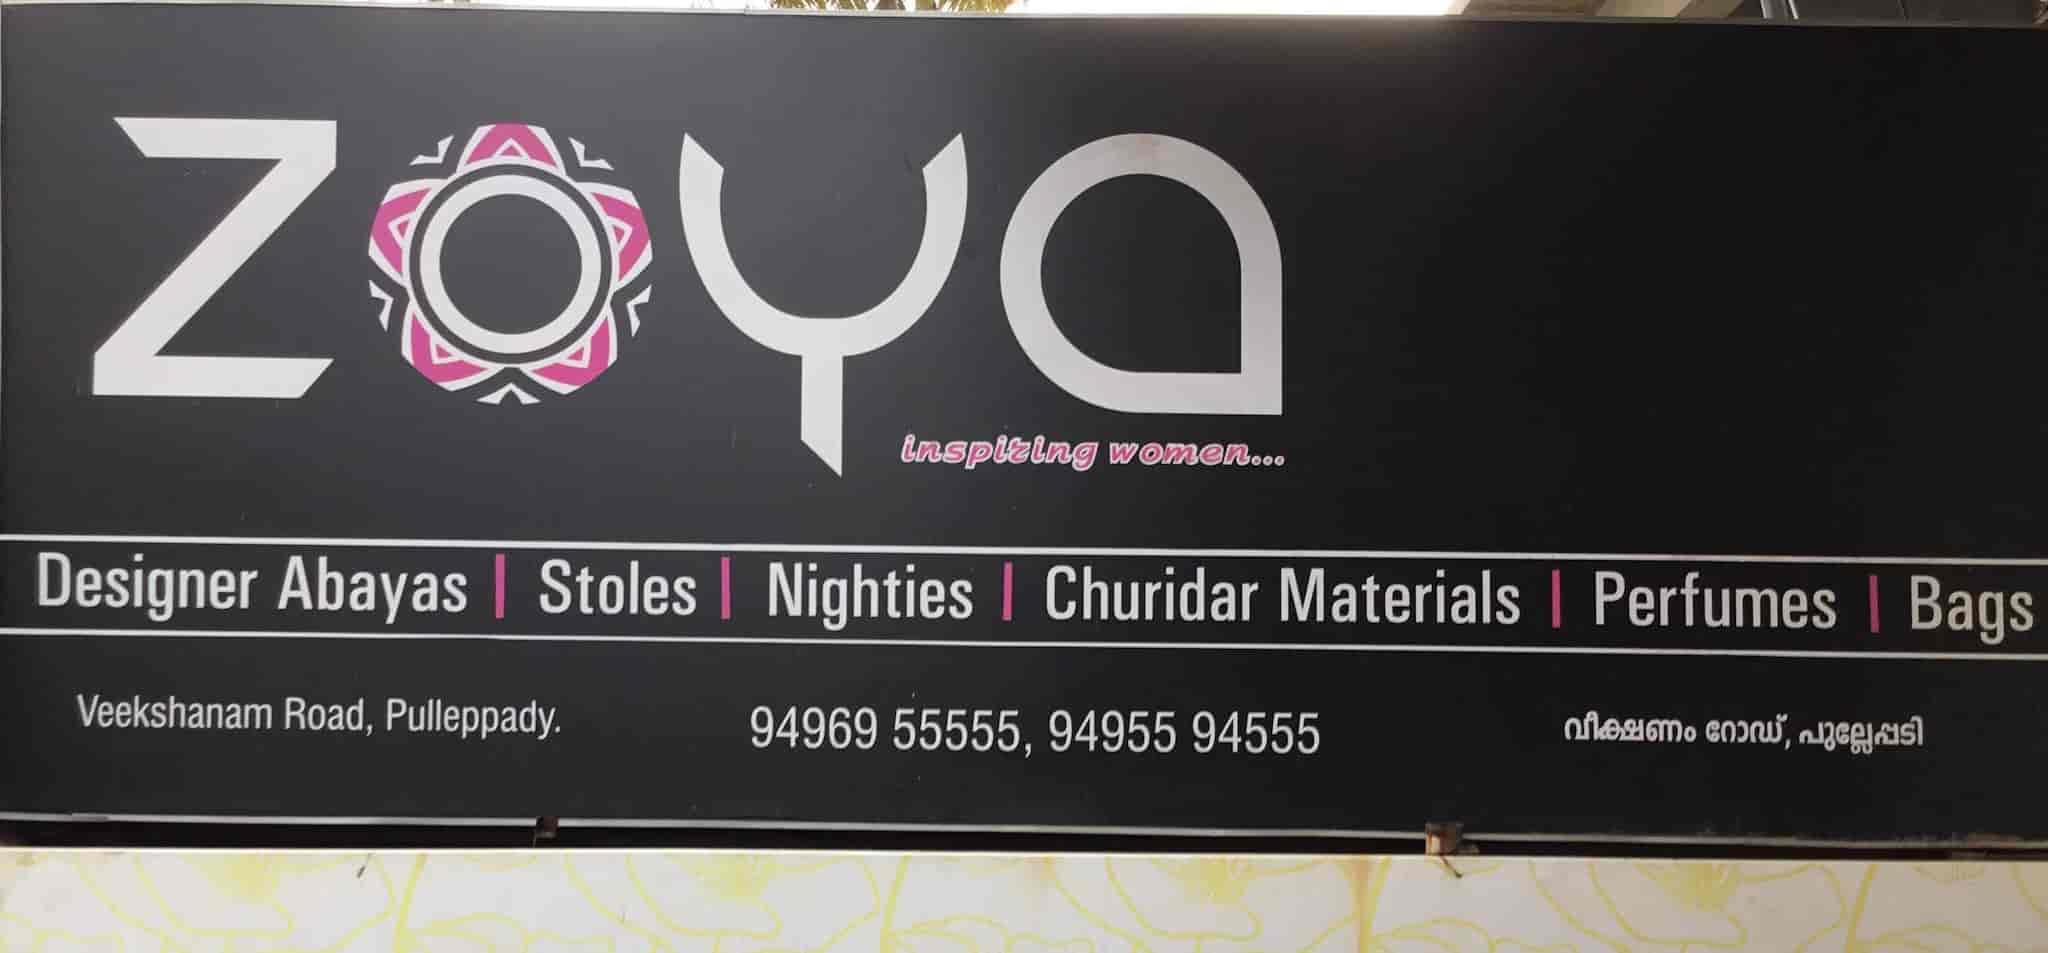 Zoya Boutique, Pullepady - Readymade Garment Retailers in